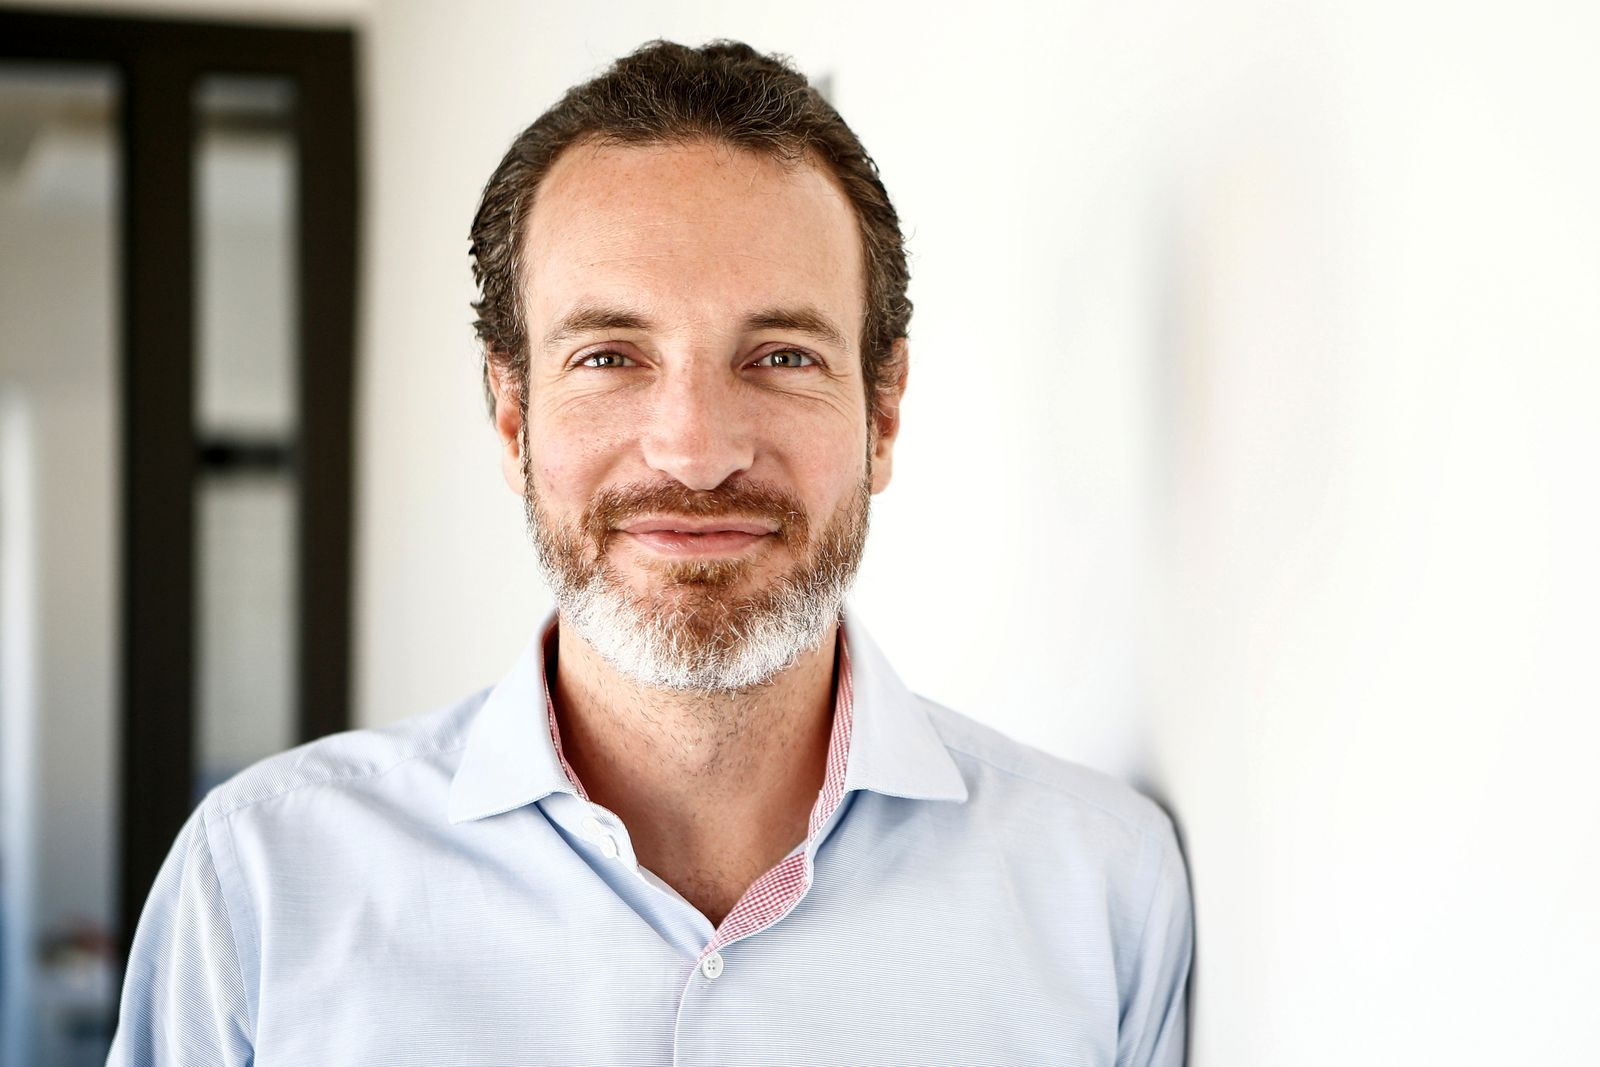 Maximilian Tayenthal, Founder and COO/CFO of the Fintech N26 (Number26), poses for a portrait in Berlin